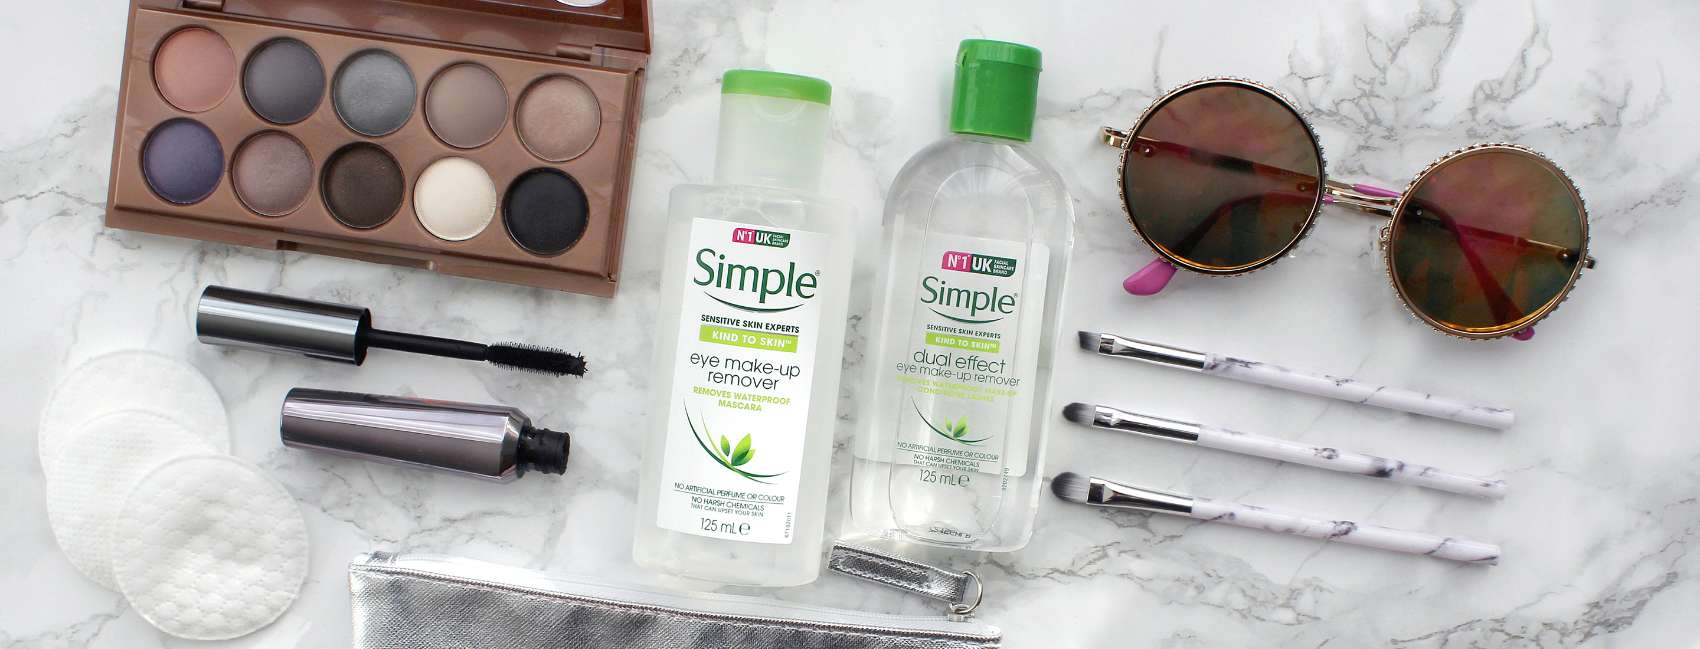 Flat lay Simple Eye Make-up Remover products with coloured eyeshadows, make-up brushes and mascara on marble countertop.